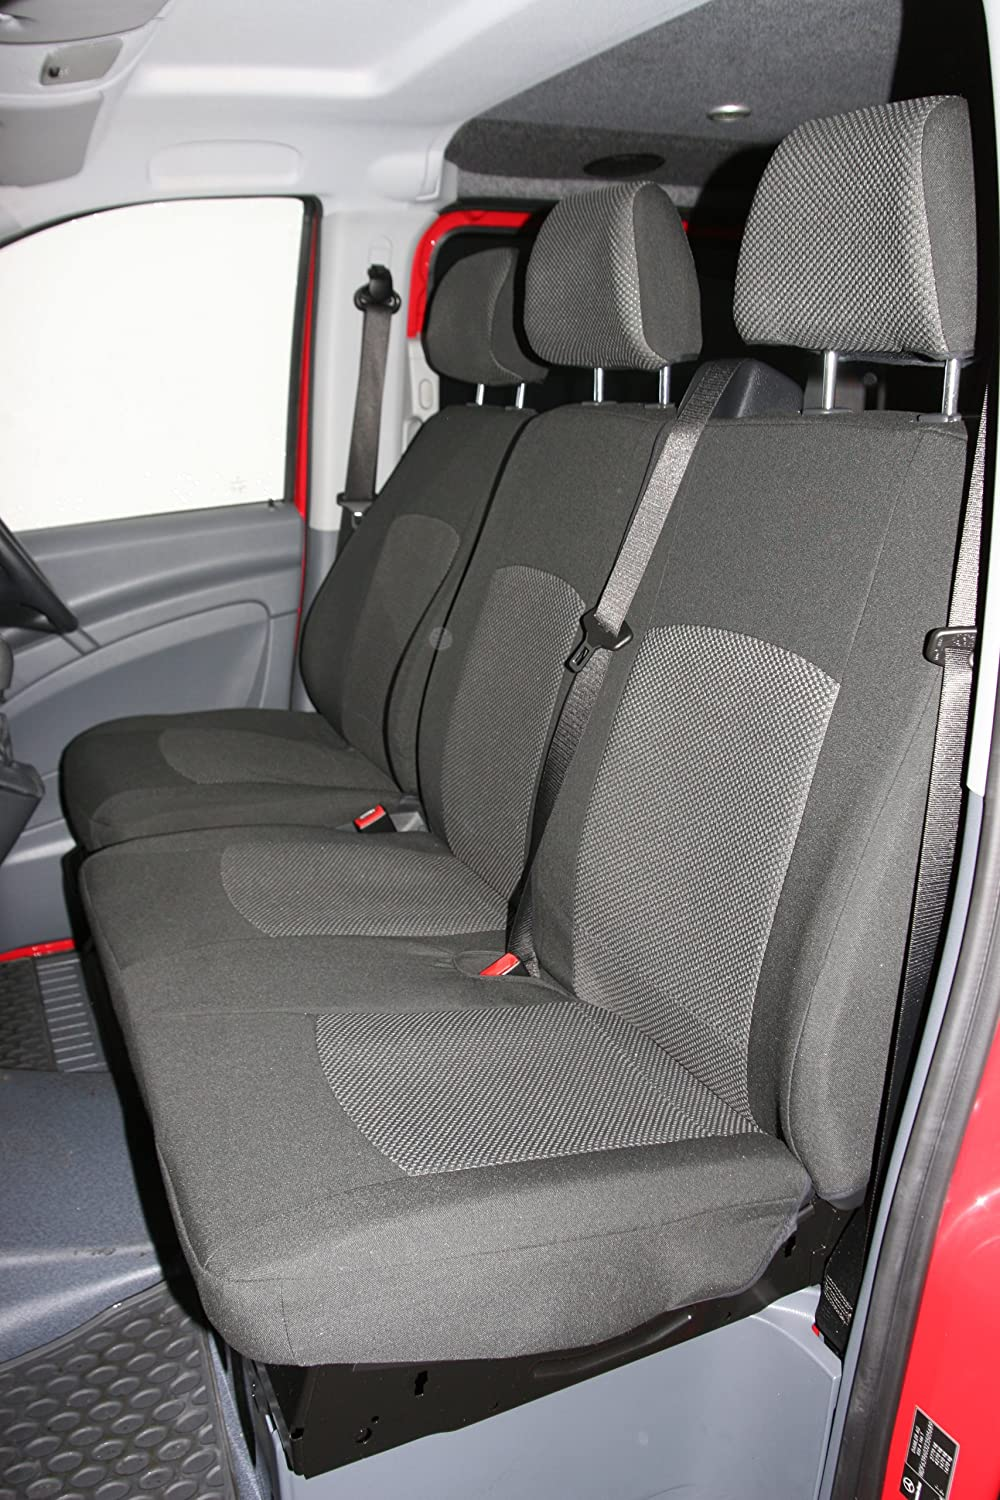 Mercedes Vito Driver Bench Seat Covers Tailored To Fit